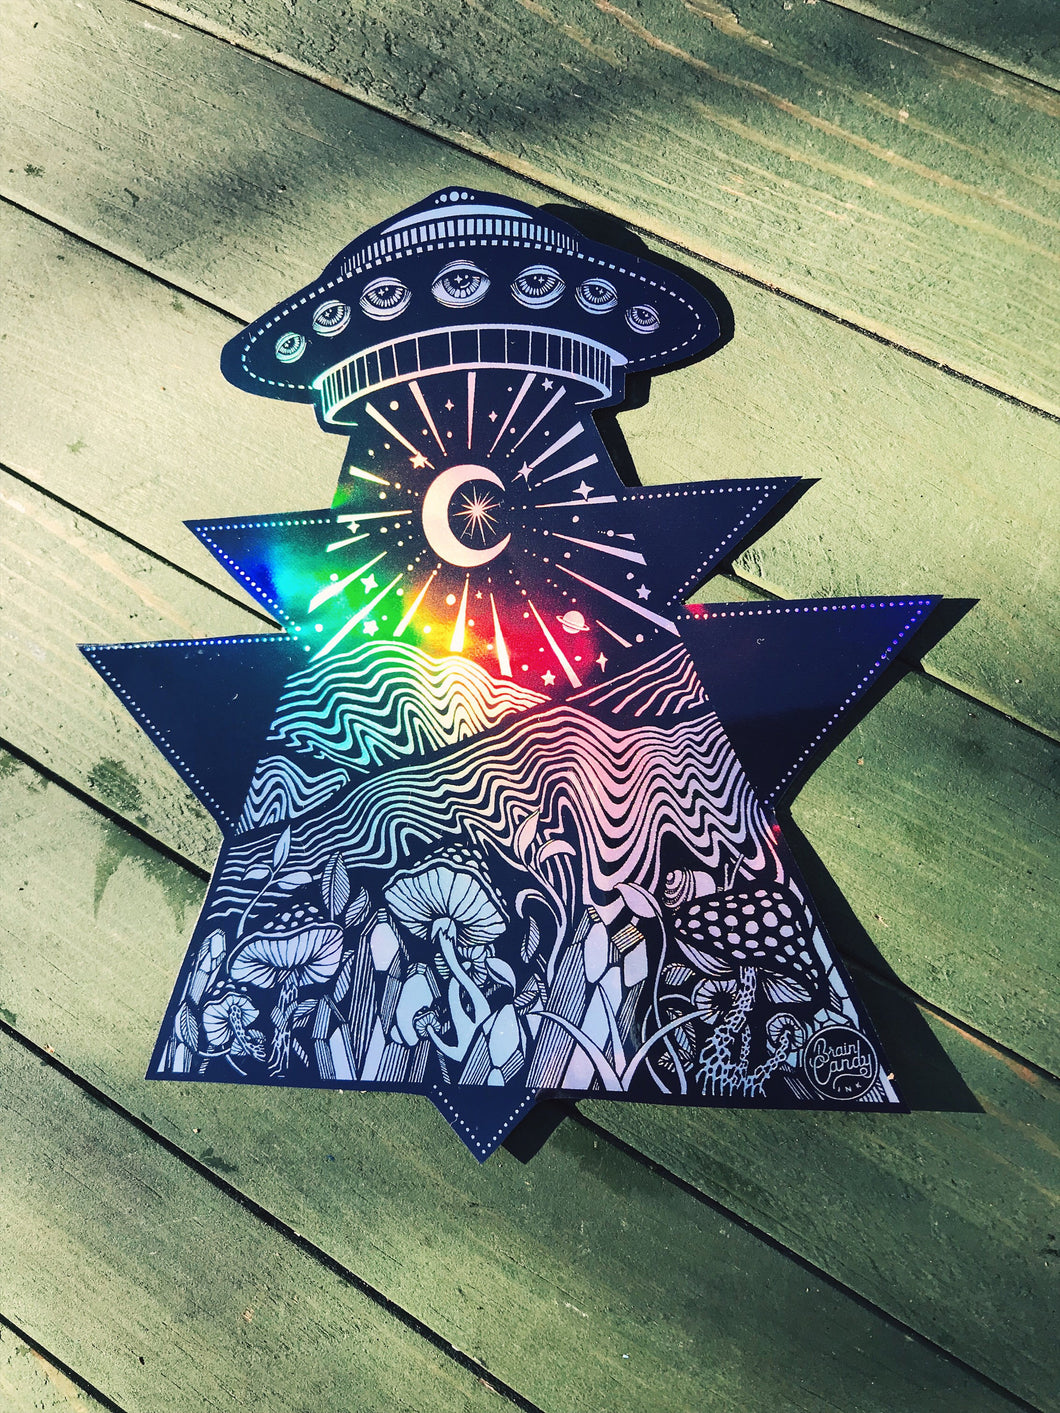 "Holographic Out of this World UFO Alien Mountain Mushroom Crystal -  Extra Large 5.5"" sticker"